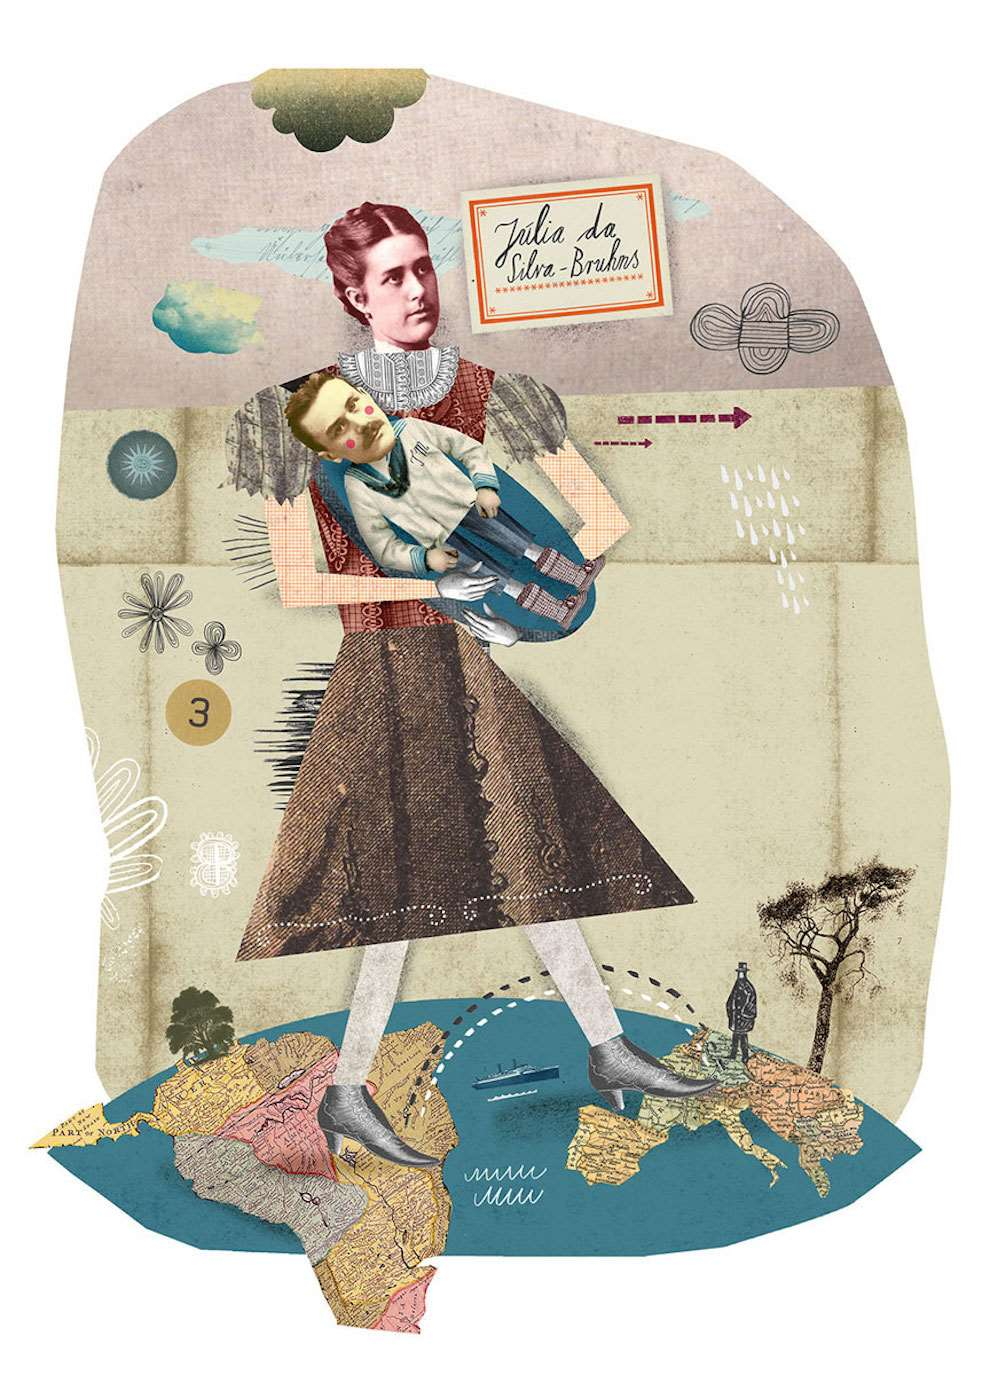 Martin Haake, Historical conceptual illustration collage of a woman holding a baby